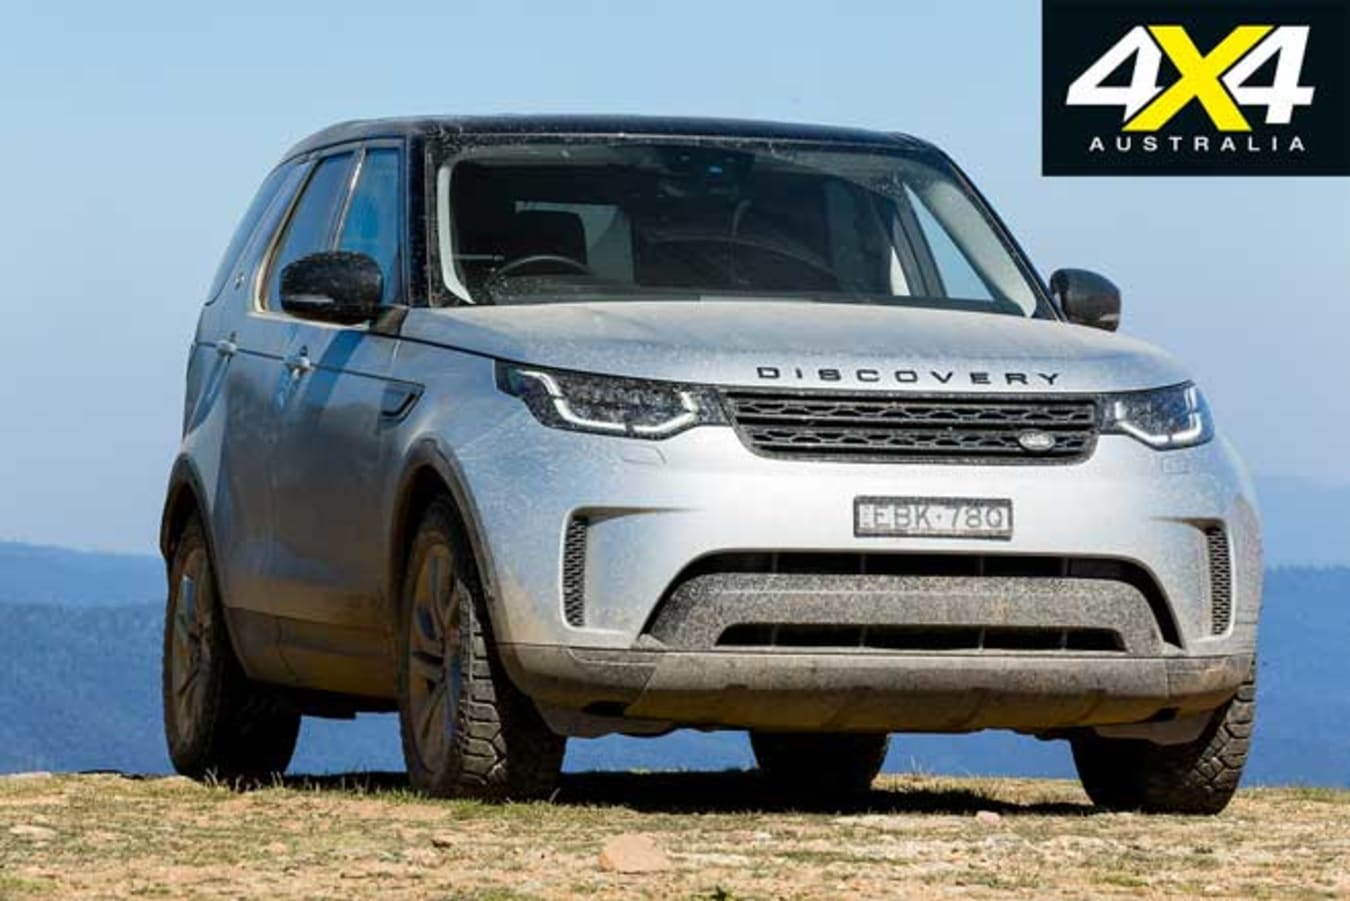 2020 4 X 4 Of The Year Land Rover Discovery Sd 6 Front Jpg